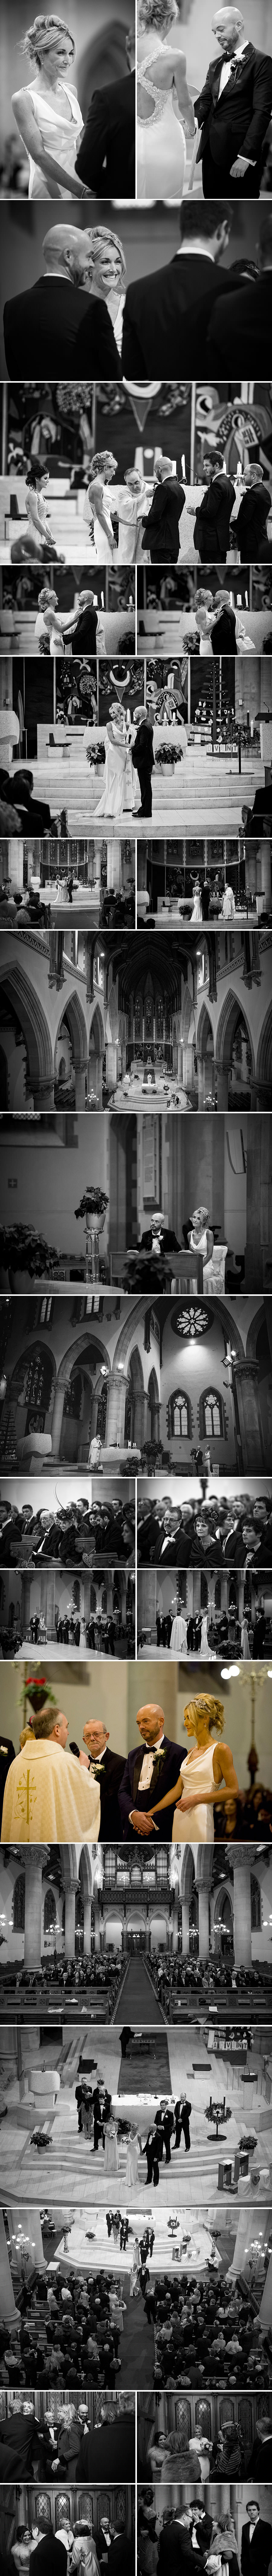 castle-leslie-wedding-winter-wedding-3